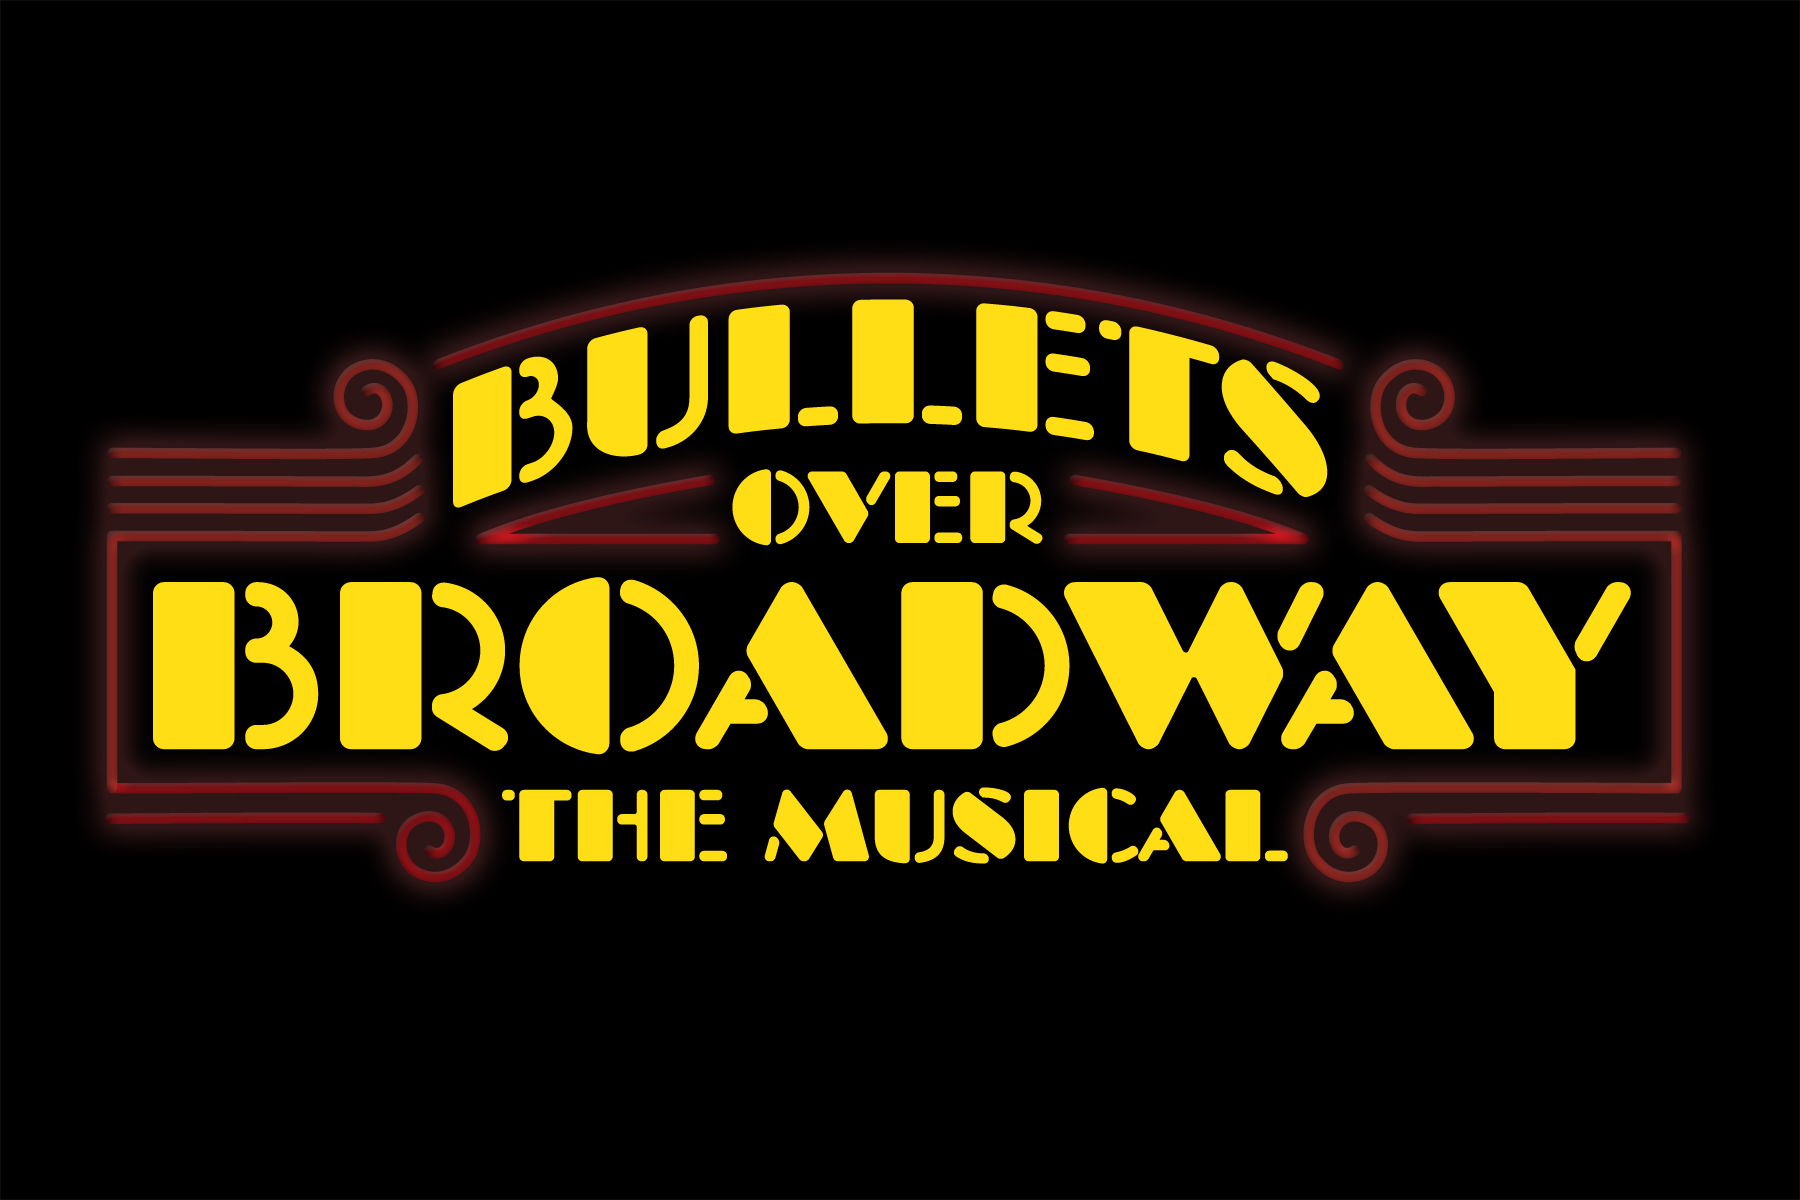 Bullets Over Broadway Musical Announces Theatre Pushed